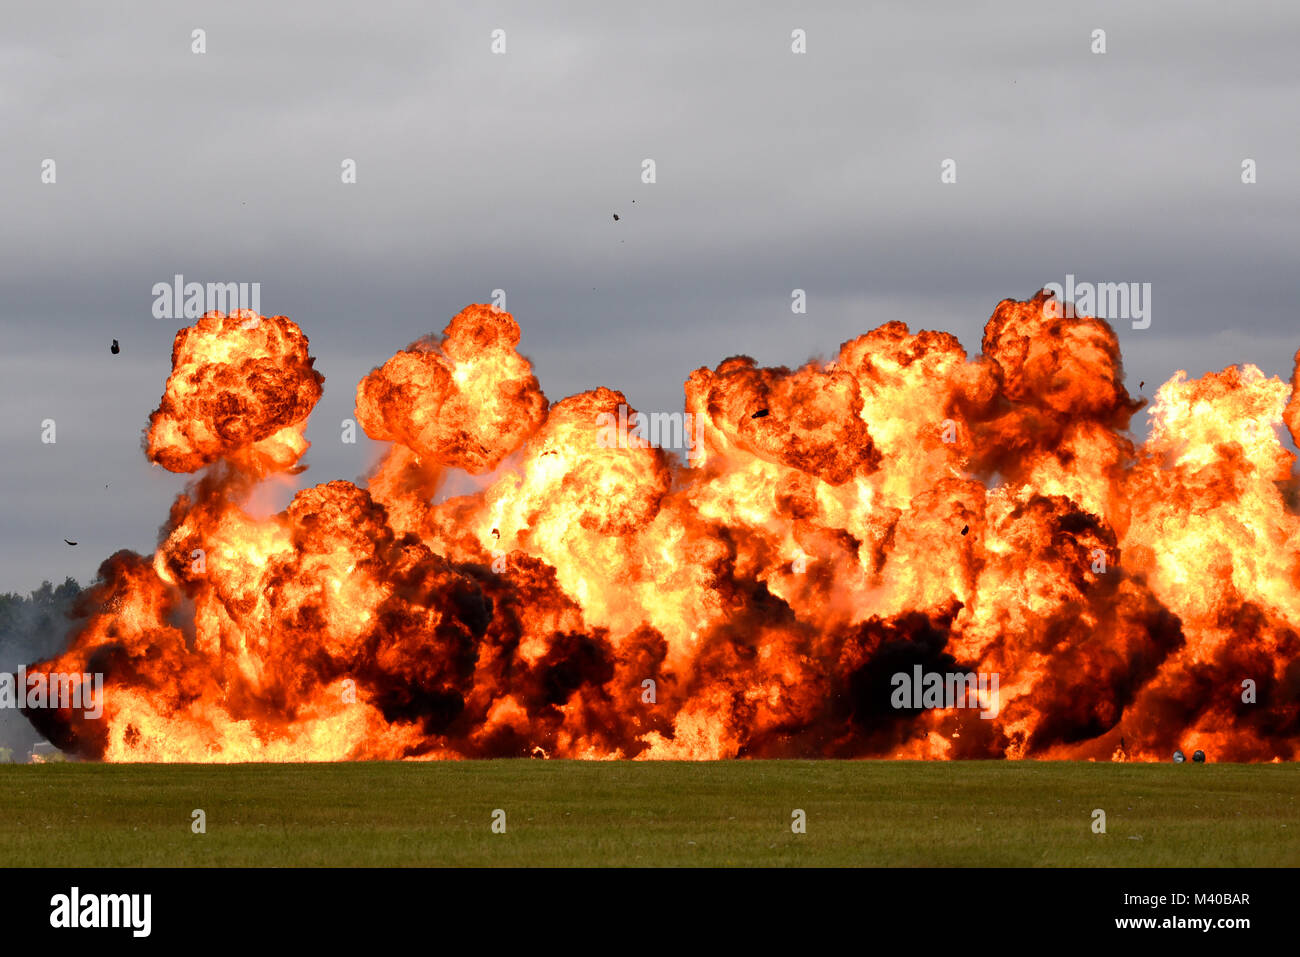 wall-of-fire-pyrotechnics-explosion-flames-flame-eruption-space-for-M40BAR.jpg